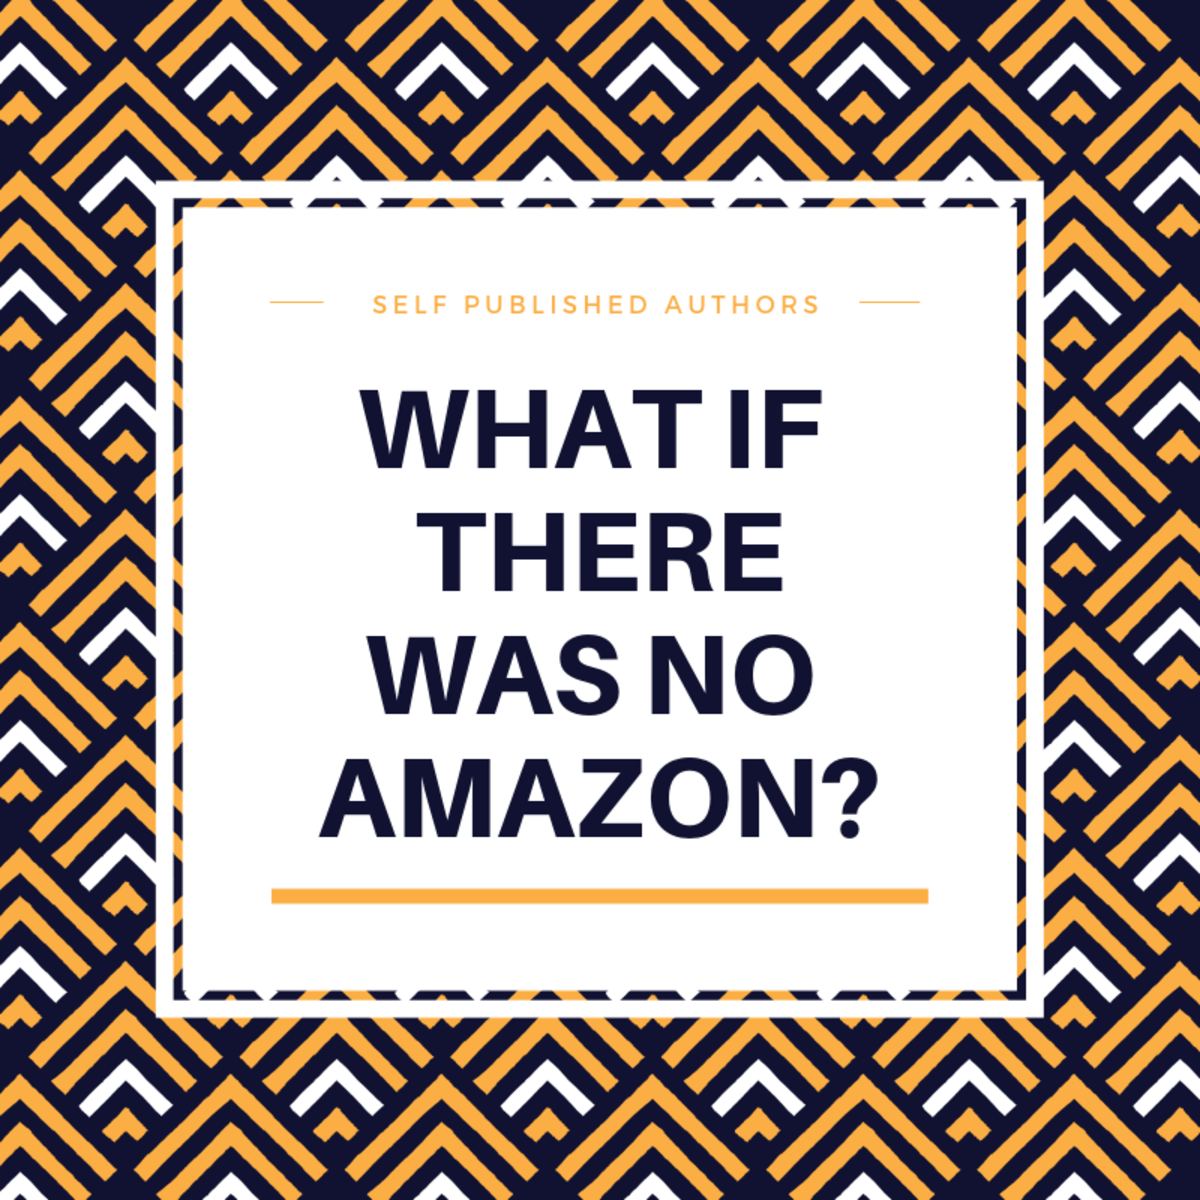 What would your self-publishing future look like if Amazon went away?